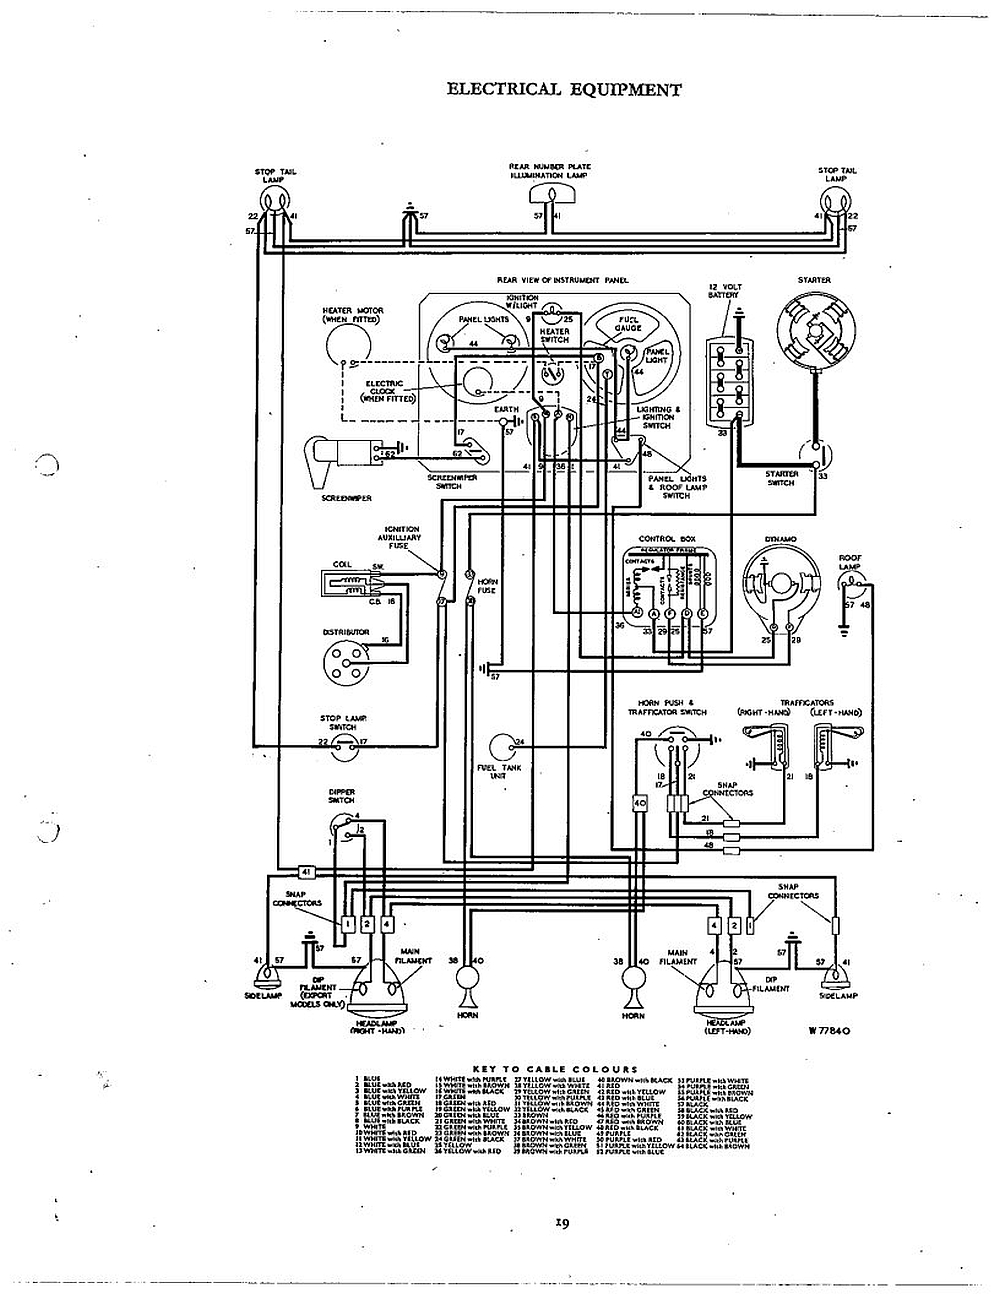 hight resolution of 1980 triumph tr7 wiring diagram wiring diagram centre wiring diagram for triumph tr7 1976